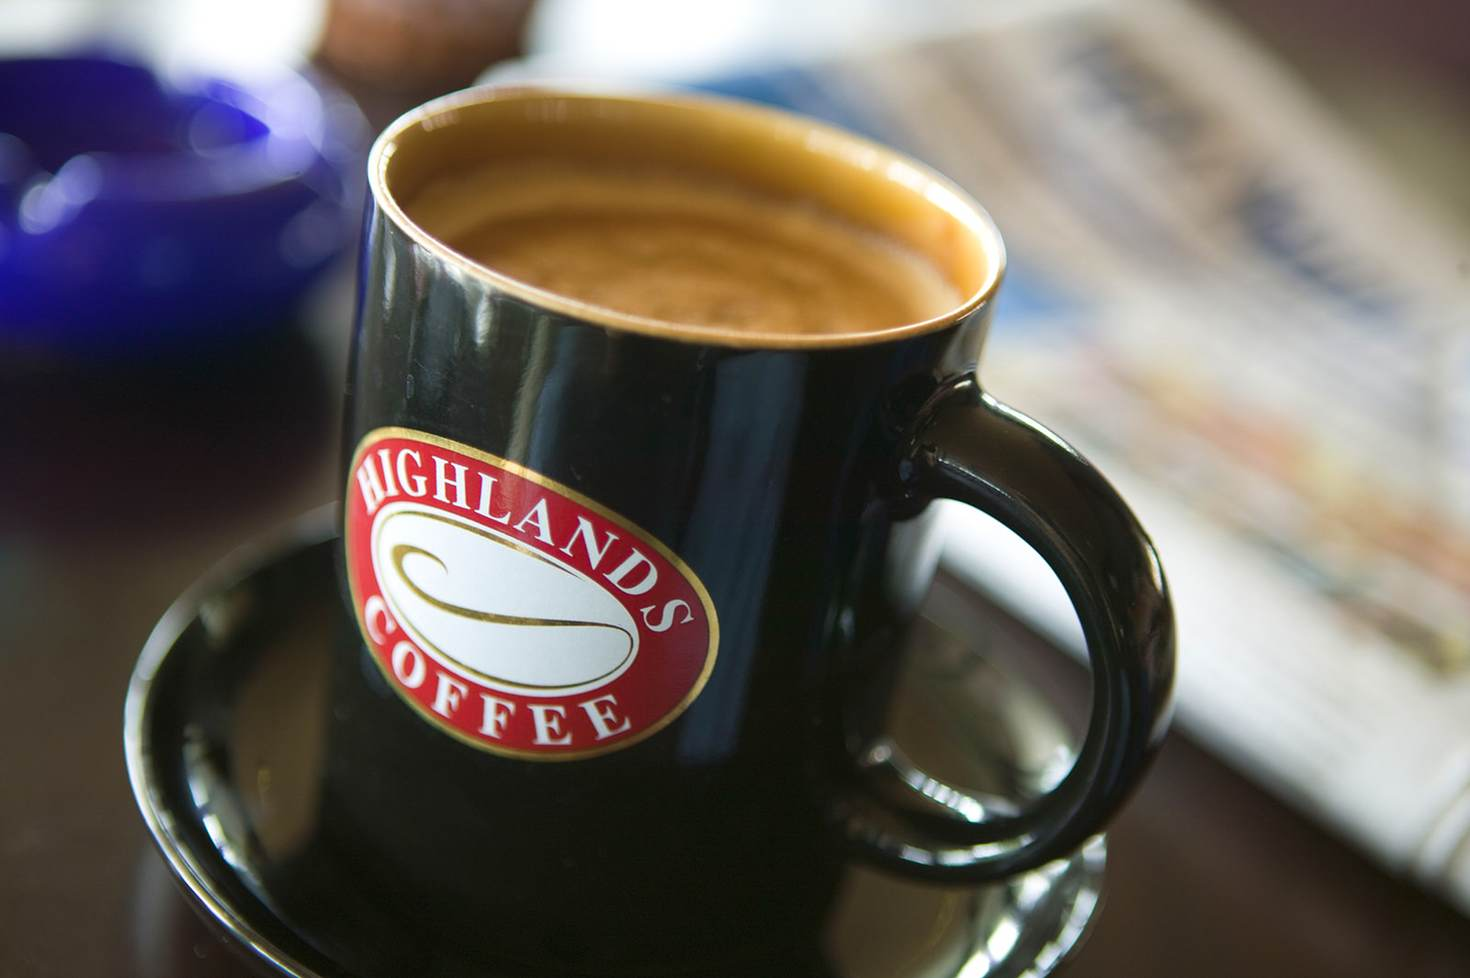 A mug of Highlands Coffee in Hanoi, where the coffee scene is developing fast © Brent Winebrenner / Getty Images